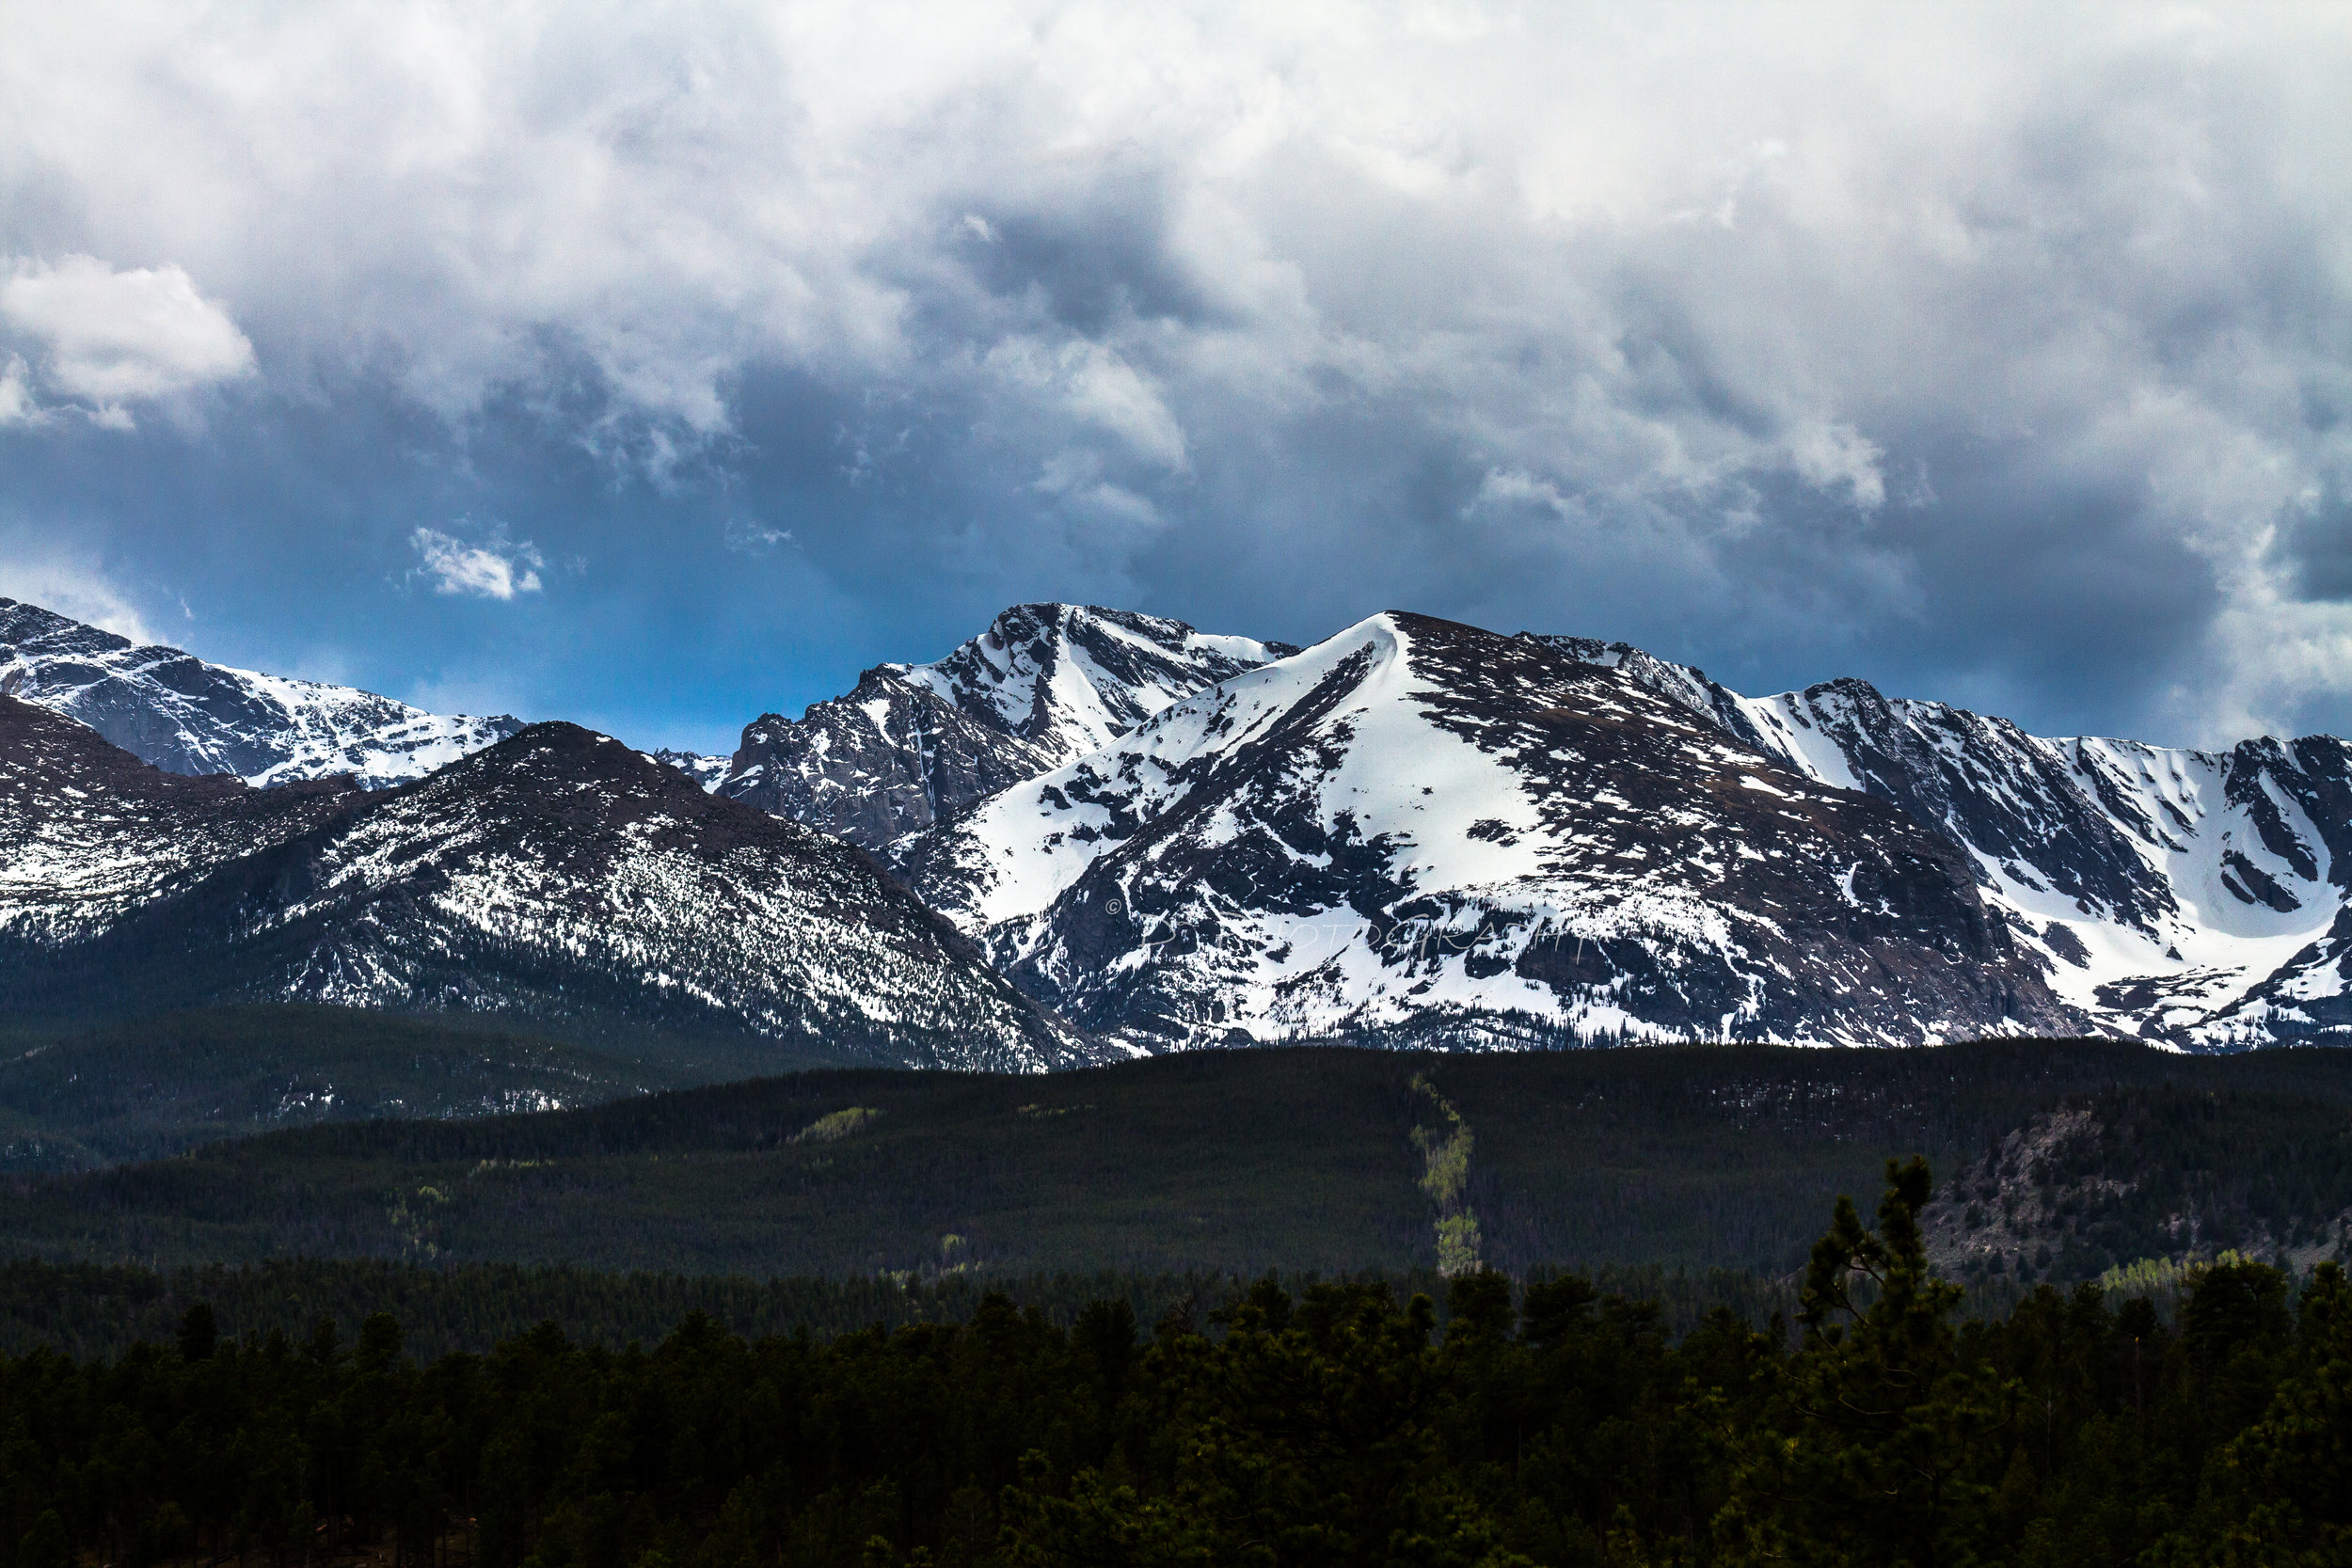 When this world stood still will you be there to feel the immense power? Rocky Mountain National Park, is a hue of violence always changing from the Earth's strong will to move forward